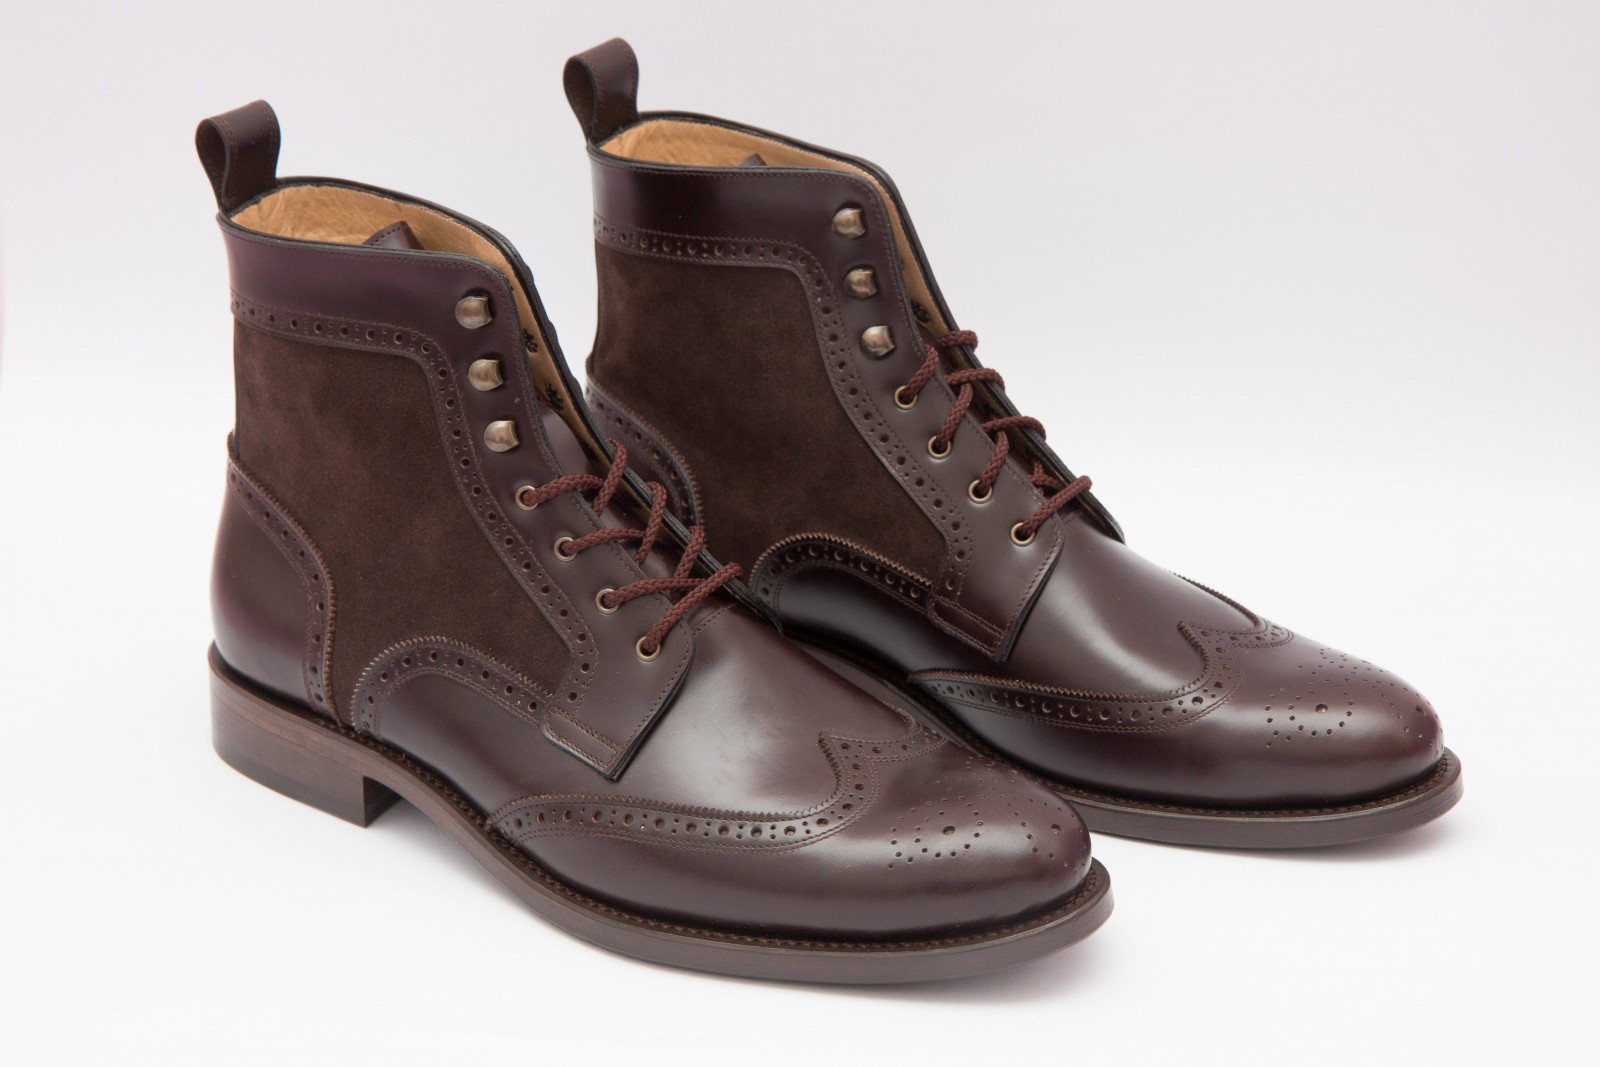 2c1e39762ca0c Wingtip Boots | Scarpatini - Handcrafted Shoes